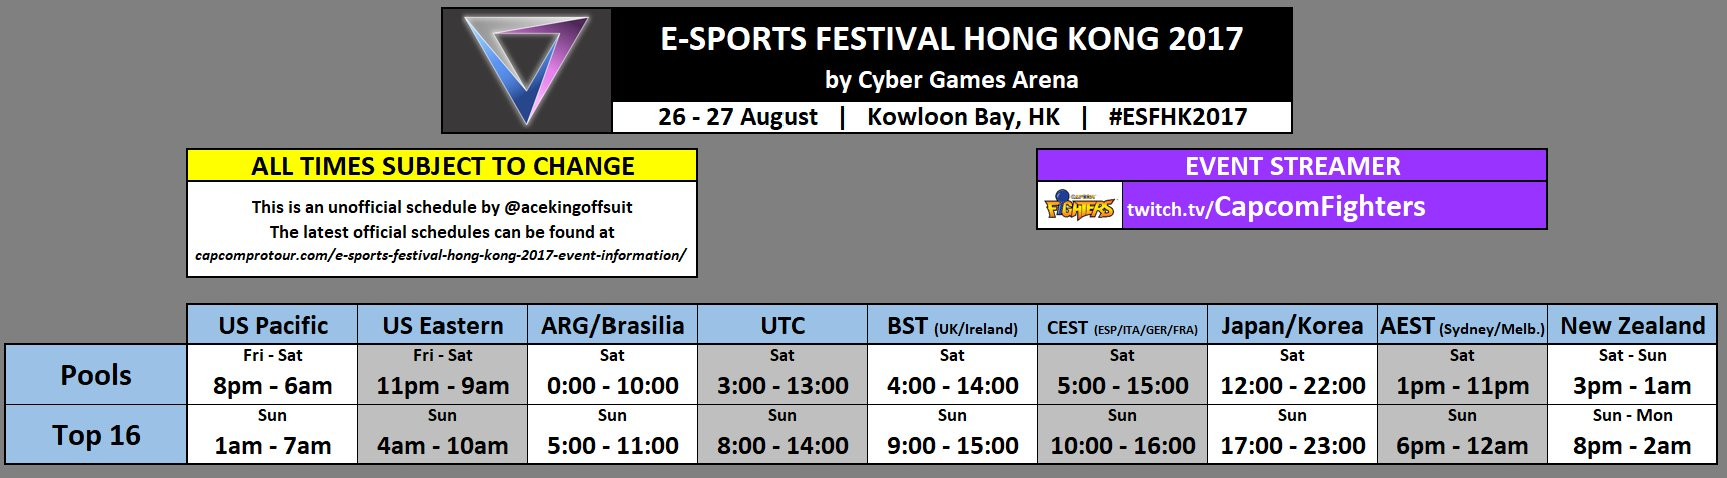 Hong Kong eSports Festival 2017 Schedule 1 out of 1 image gallery